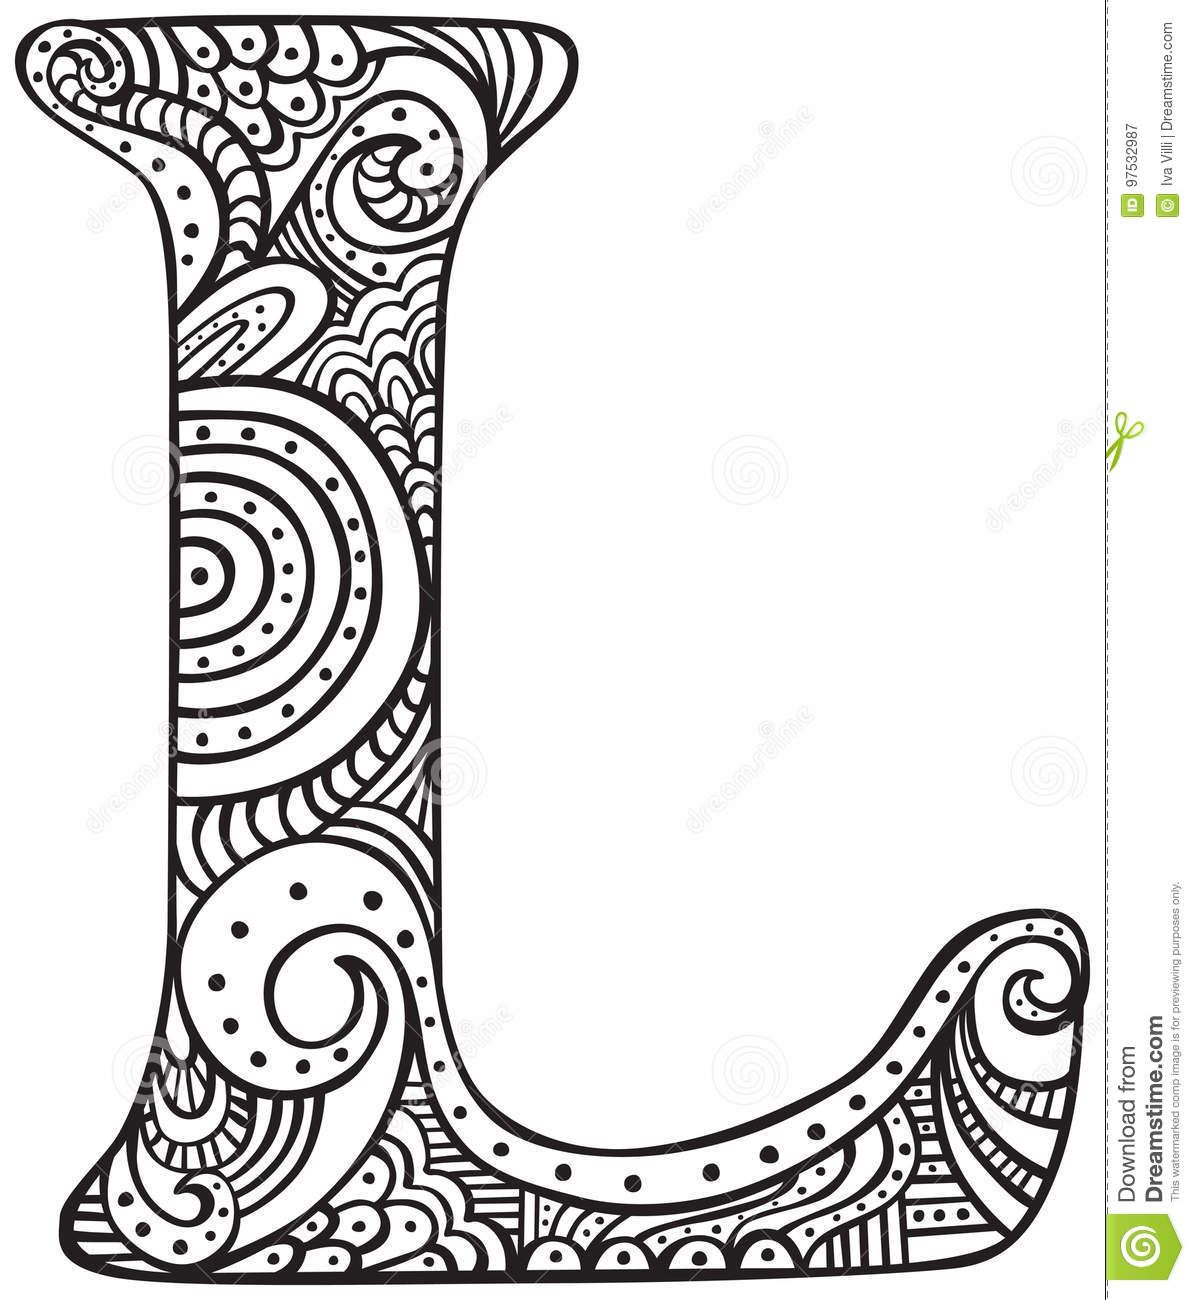 Illustration About Hand Drawn Capital Letter L In Black Coloring Sheet For Adults Illustration Of Font Doodle Lettering Coloring Letters Doodle Art Letters